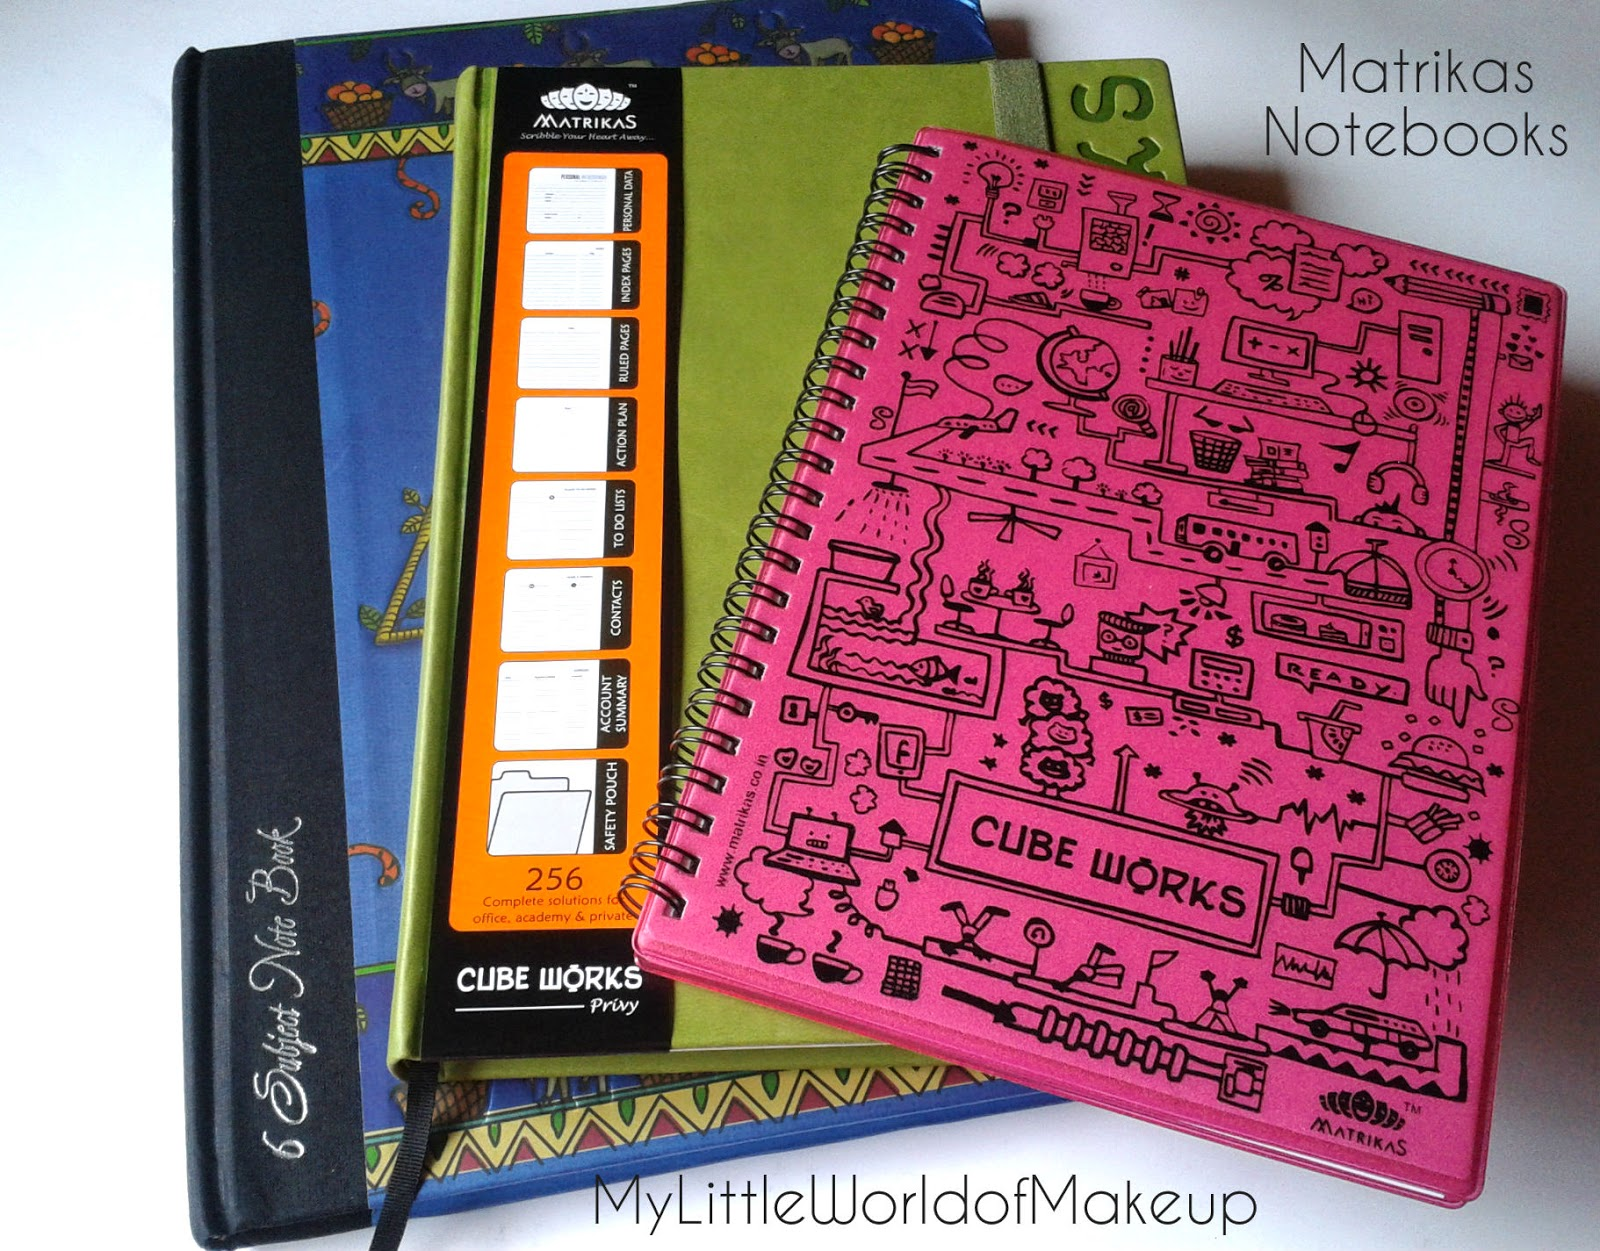 my little world of make up martrikas notebooks review the notebooks came at my doorstep so neatly and securely packaged in a box each notebook is sealed a clean film in order to avoid any scratches which